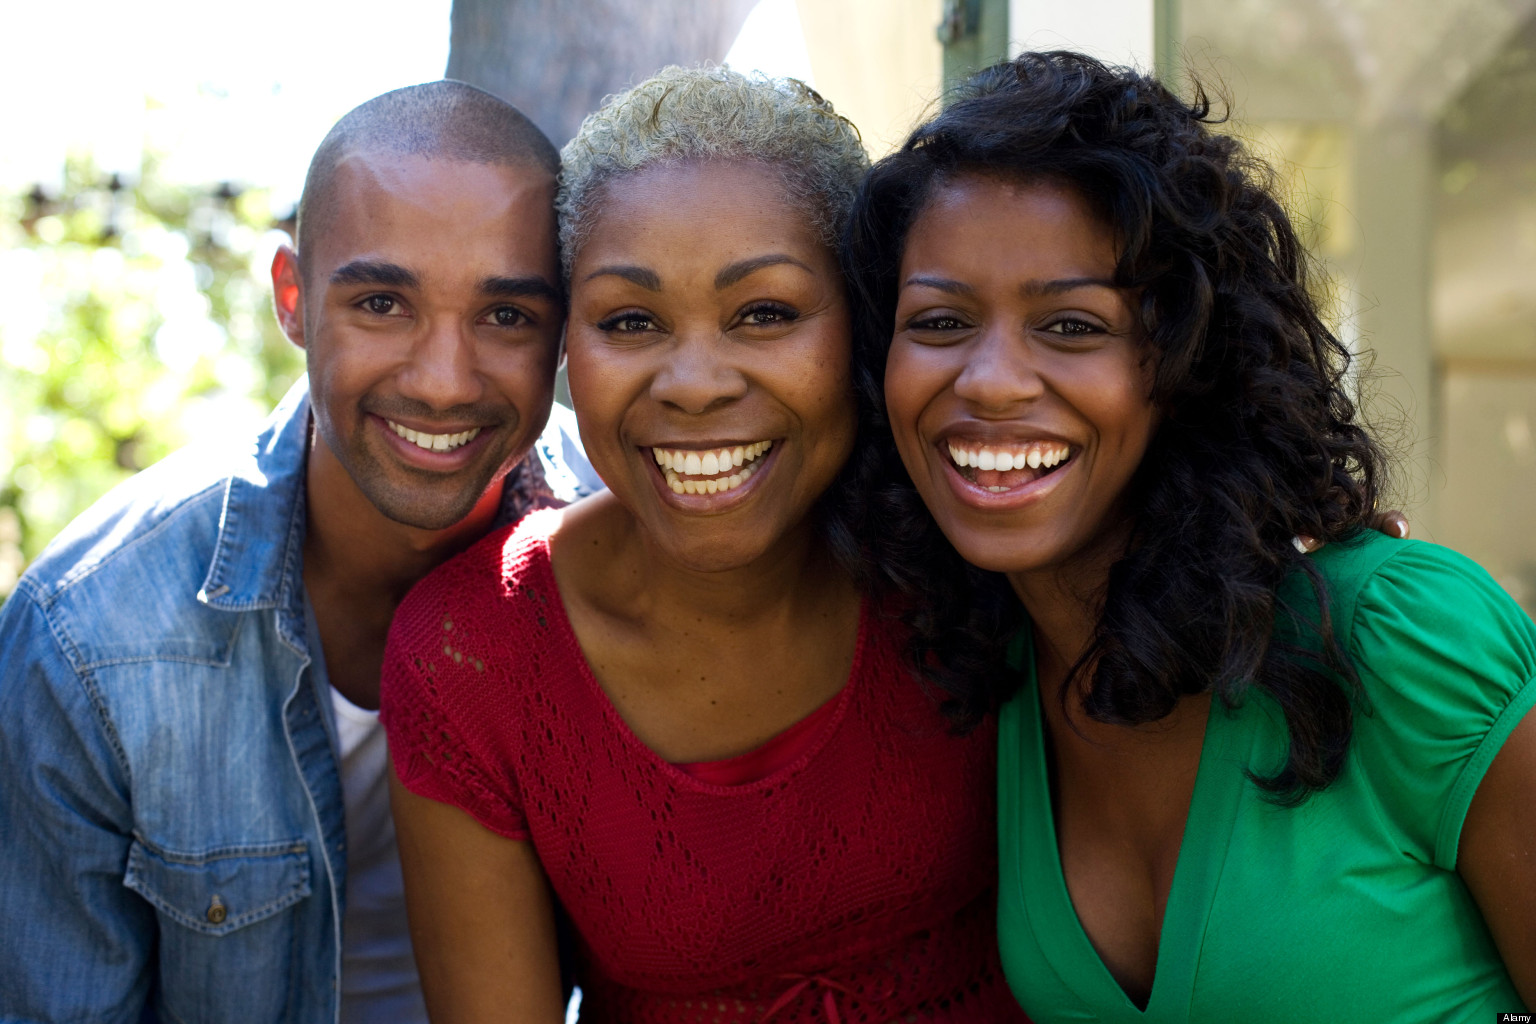 Couple and woman smiling outdoors. Image shot 2007. Exact date unknown.